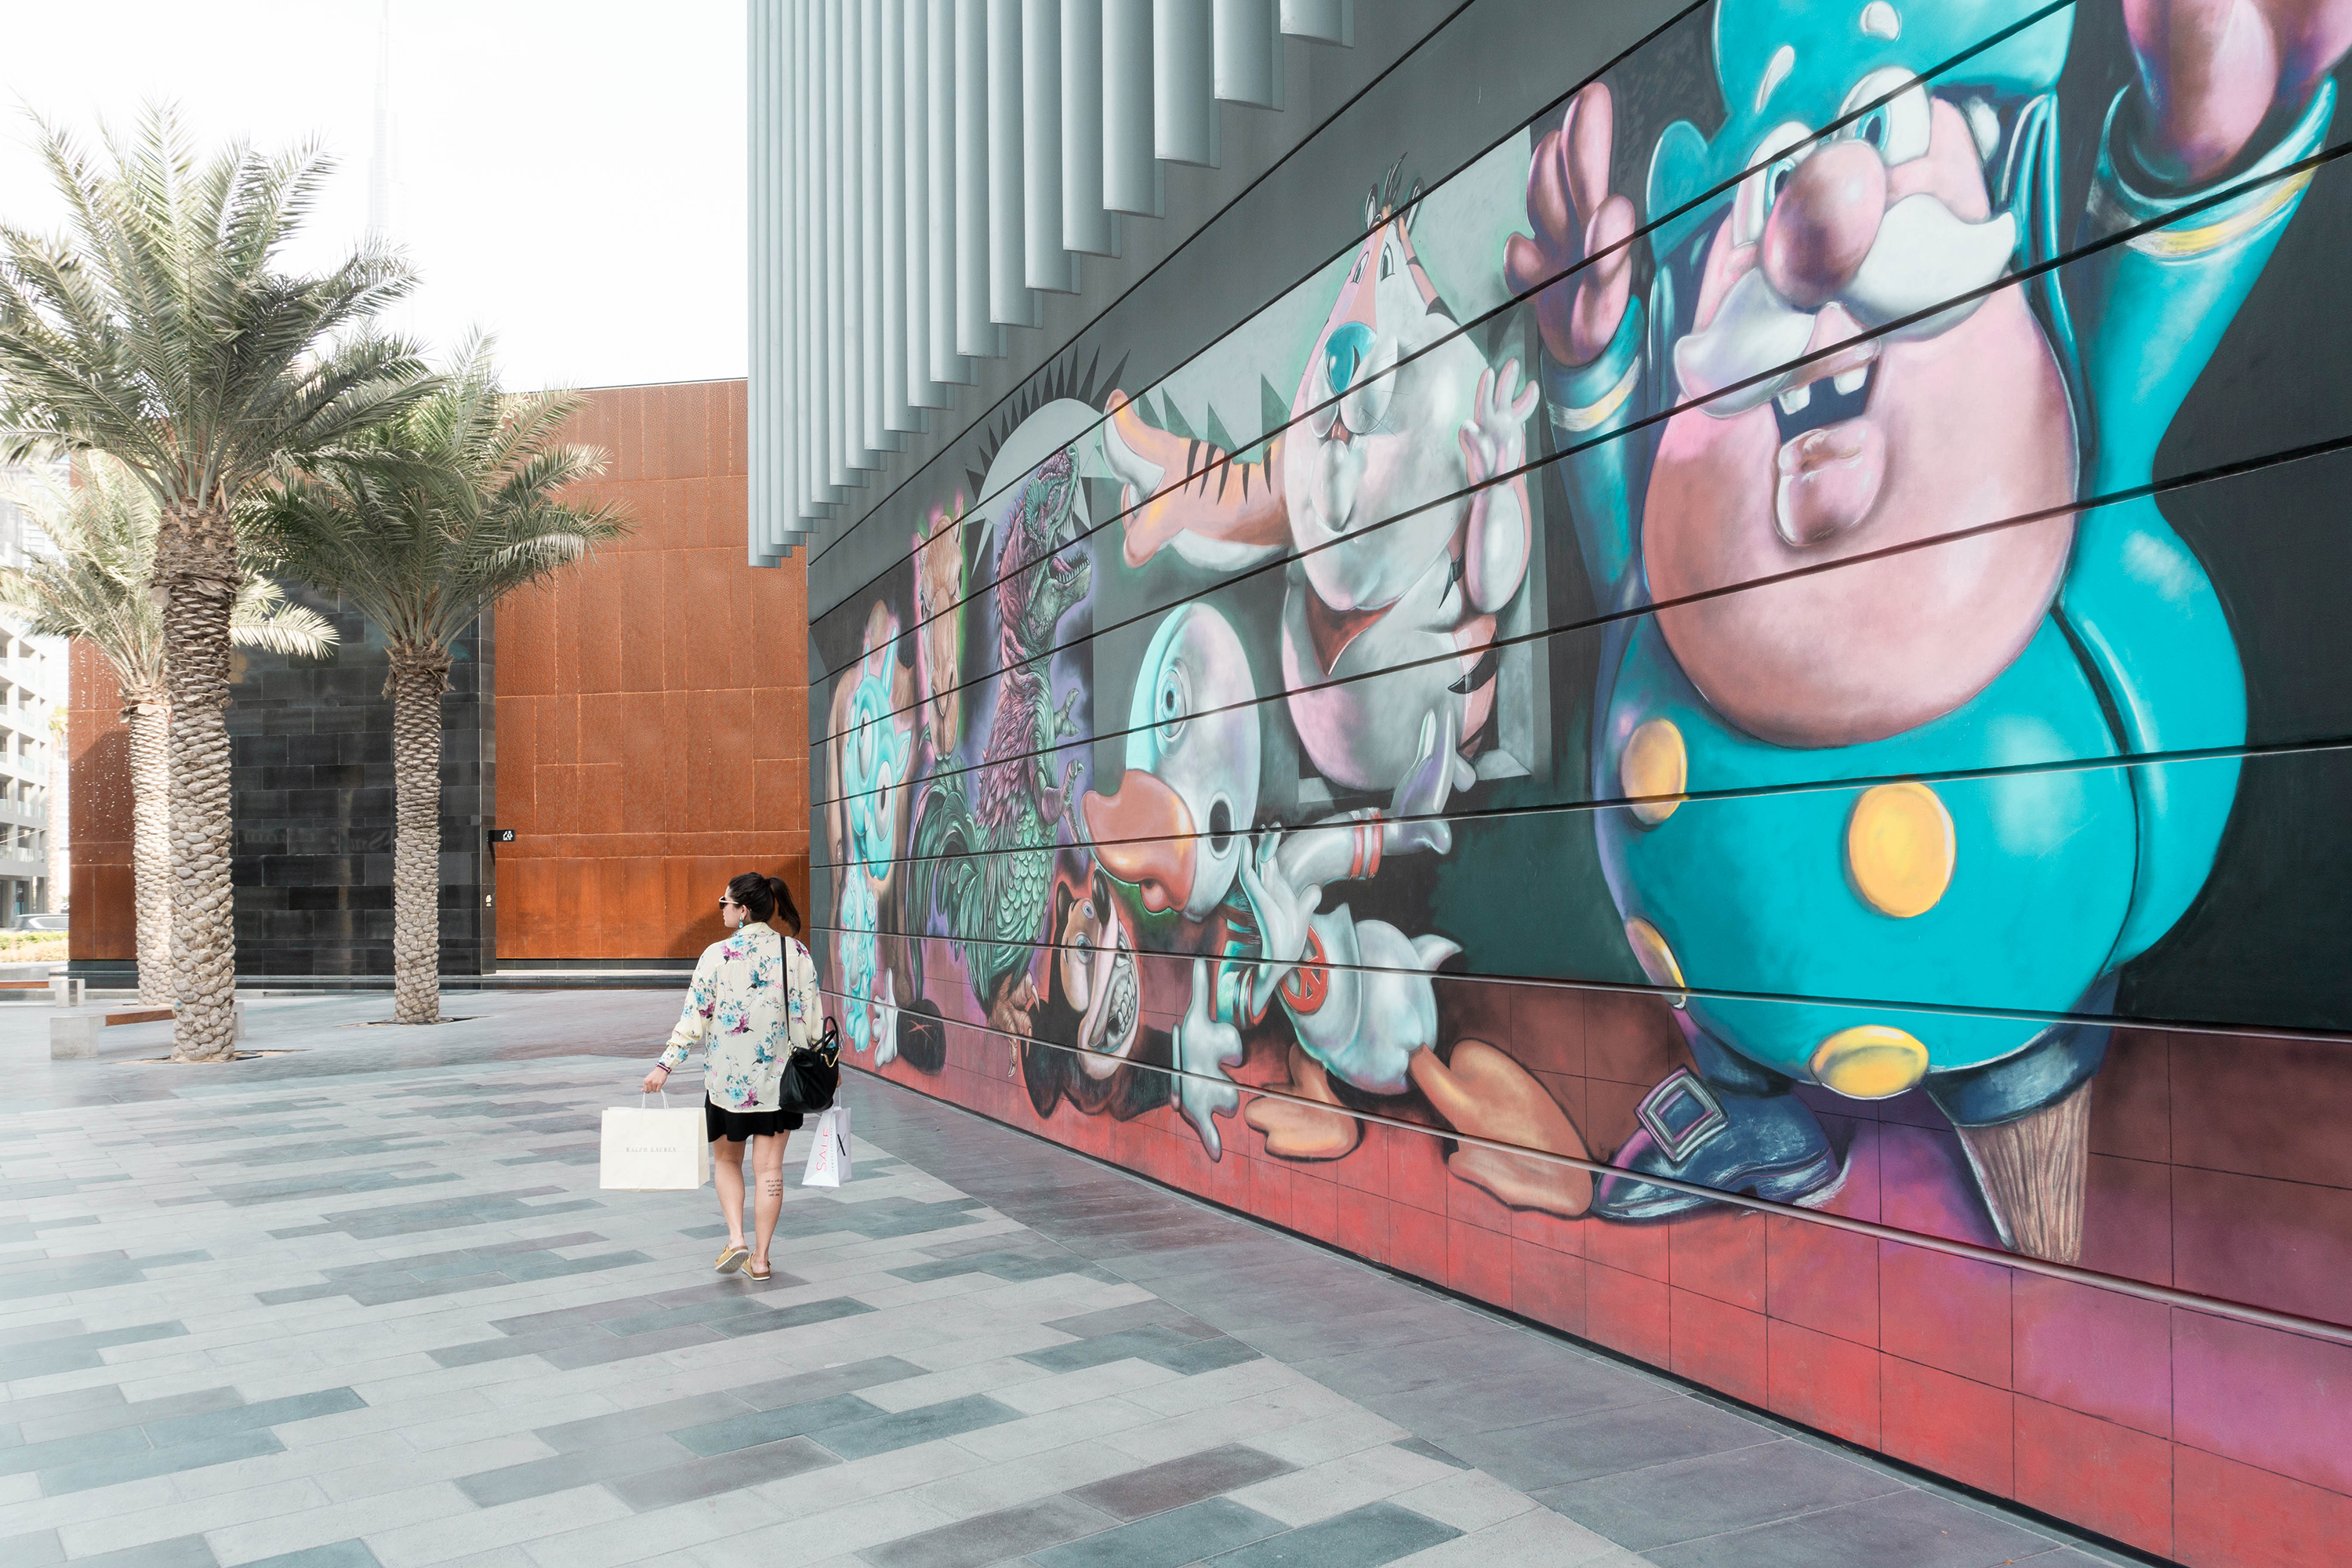 1 day in Dubai – City Walk shopping and wall art